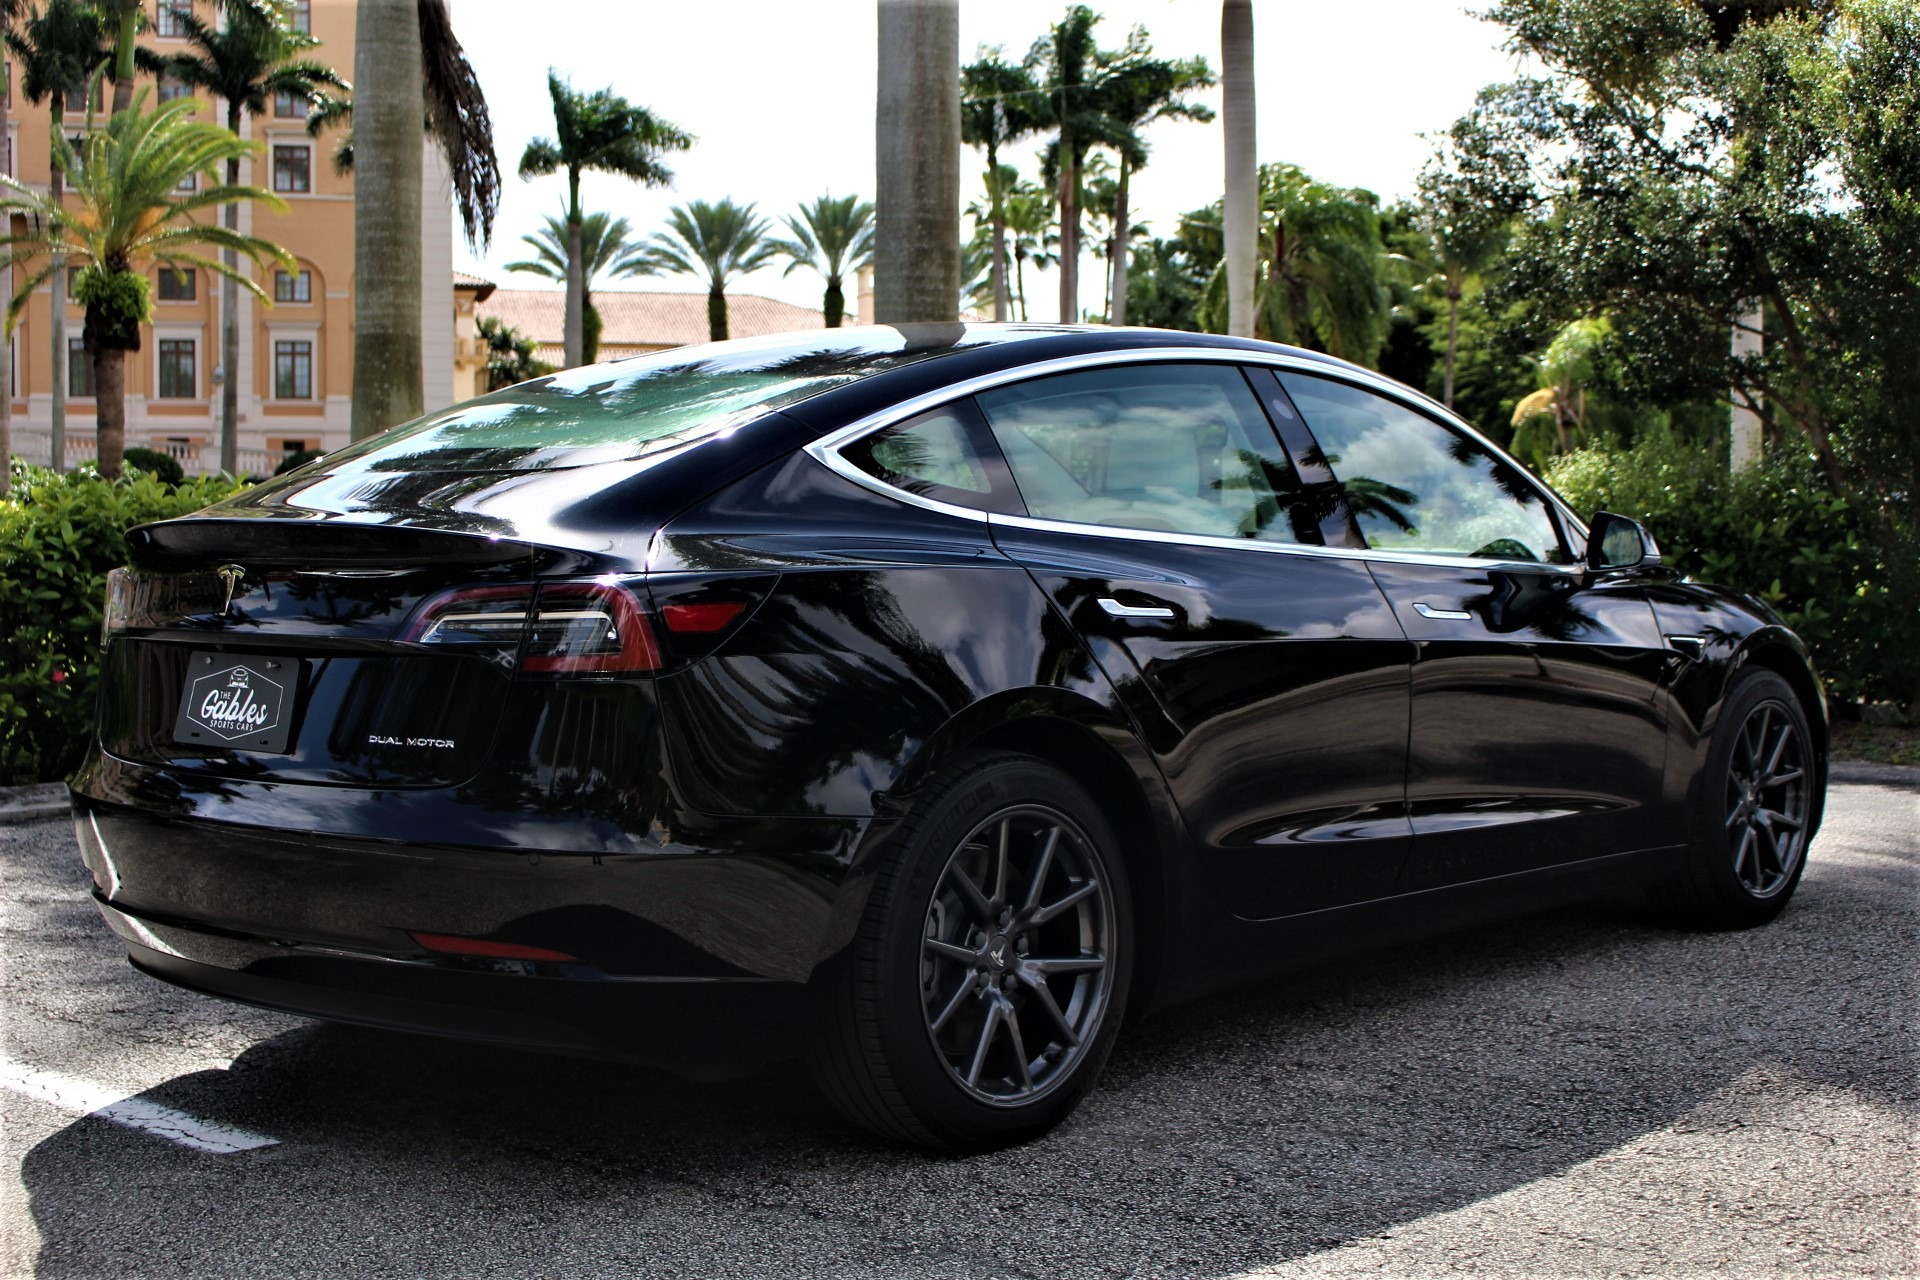 Used 2019 Tesla Model 3 Performance for sale $52,850 at The Gables Sports Cars in Miami FL 33146 4